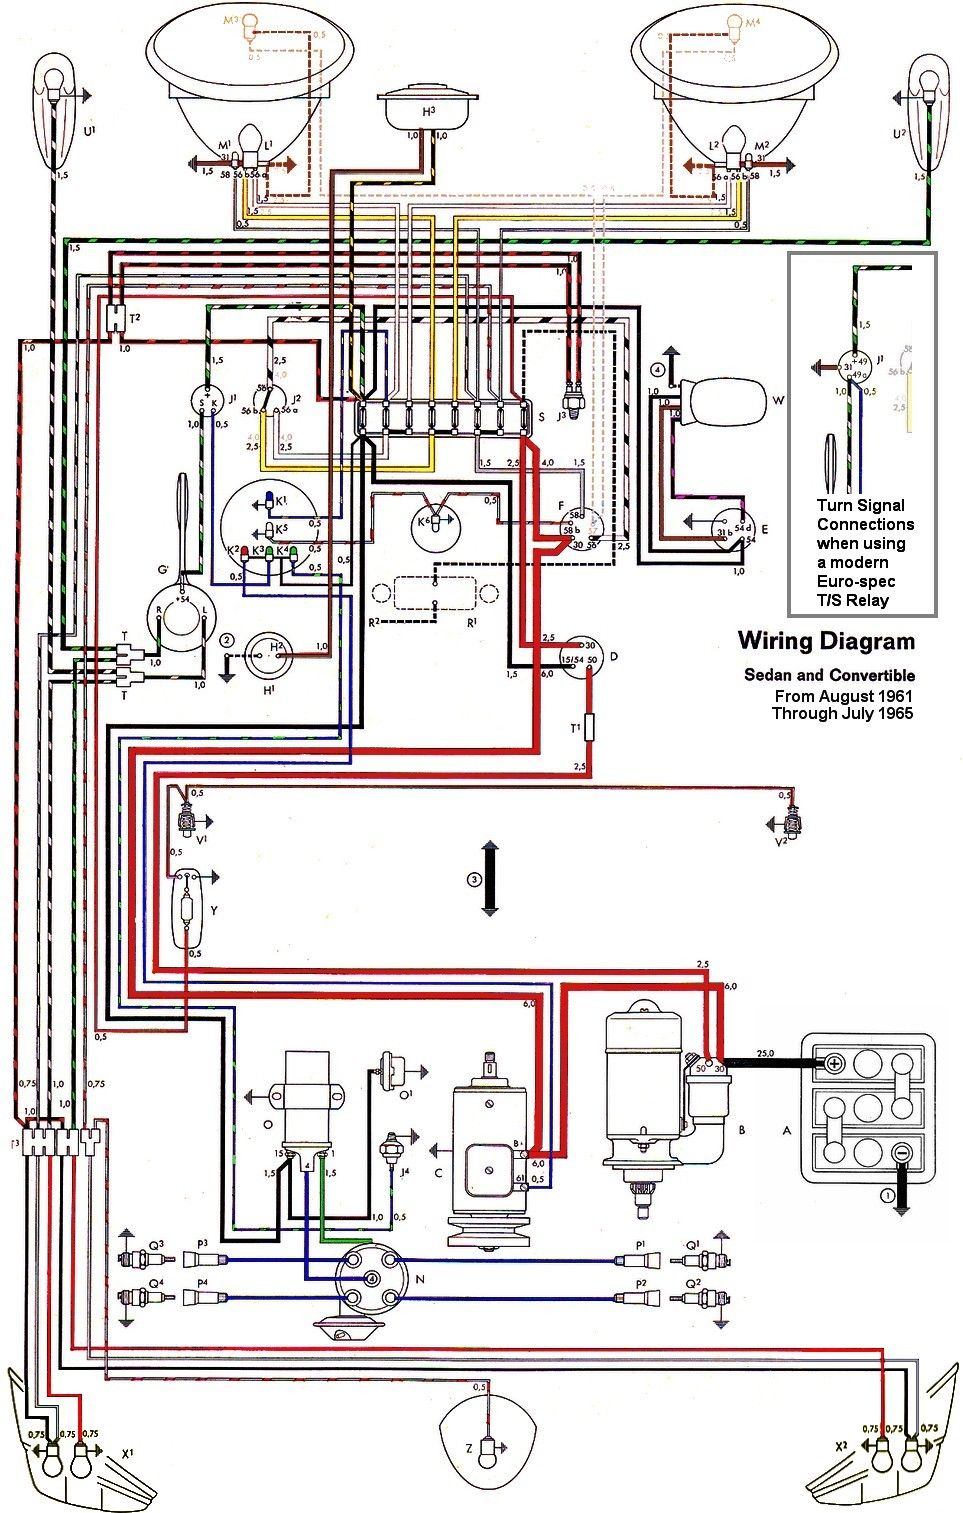 DIAGRAM] 69 Beetle Wiring Diagram FULL Version HD Quality Wiring Diagram -  THOUGHTSCHEME.SIGGY2000.DEthoughtscheme.siggy2000.de